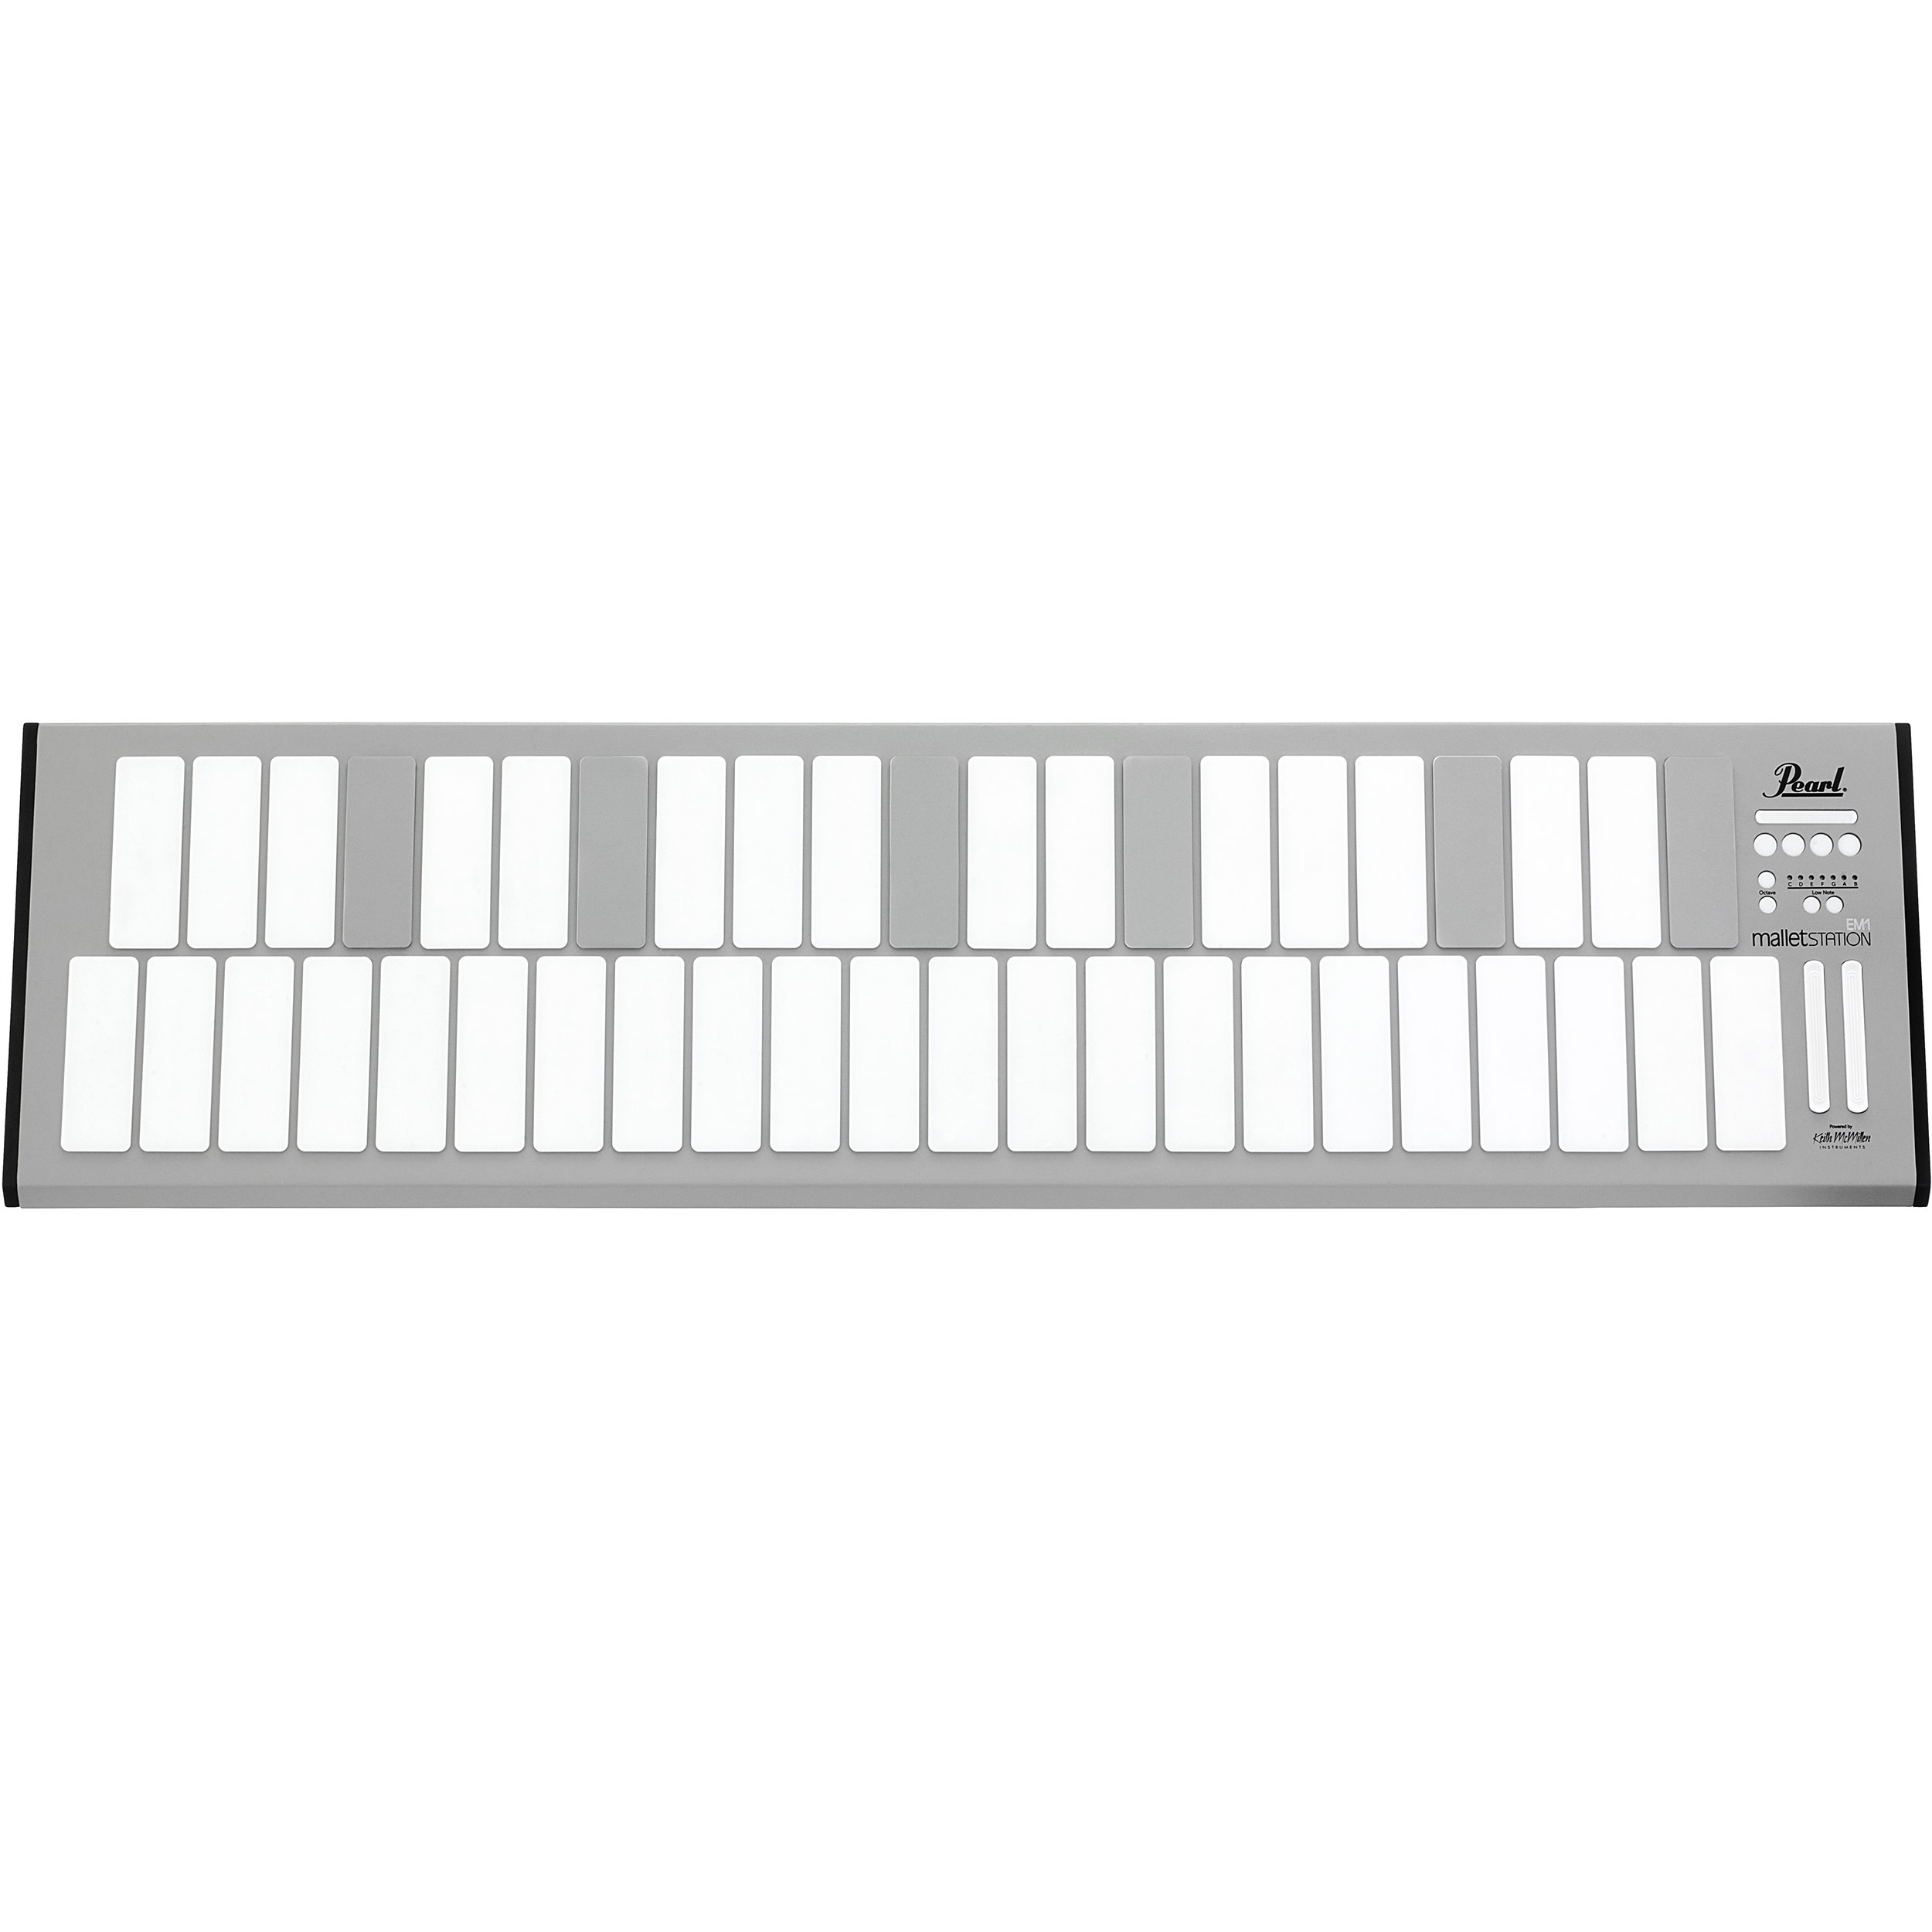 Pearl 3.0 Octave Electronic malletSTATION Controller